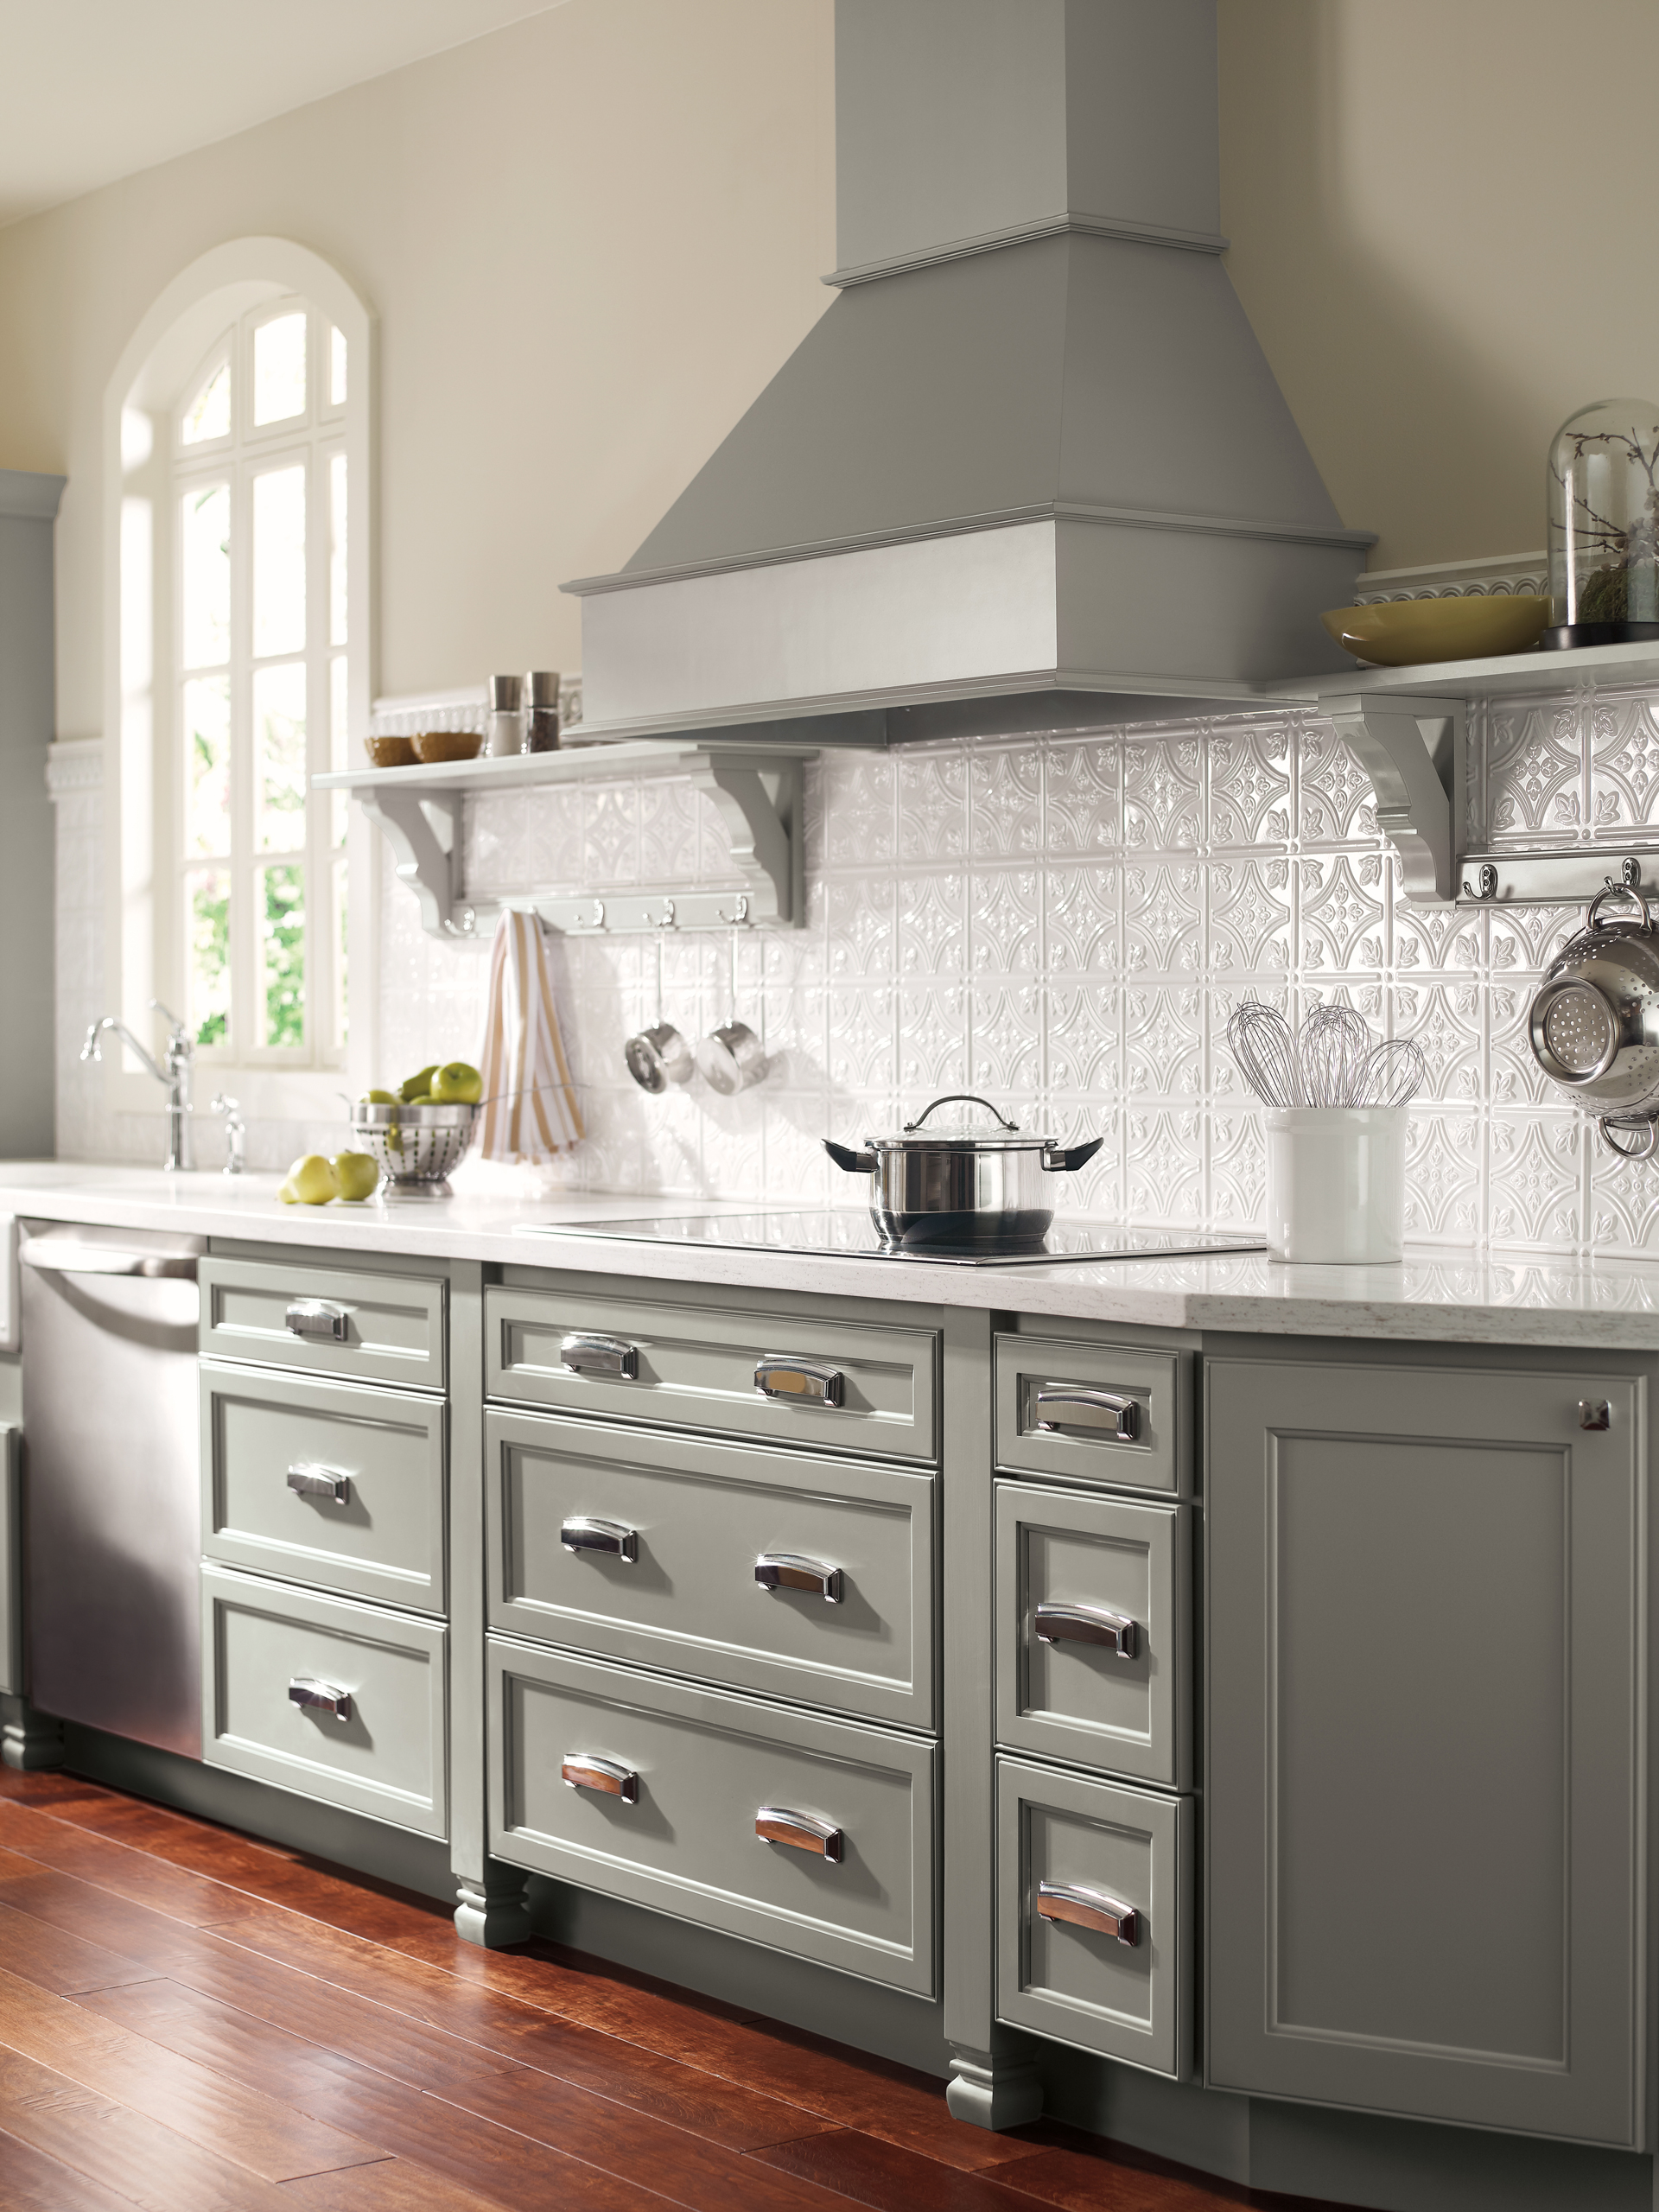 Homecrest Brenner Willow Kitchen Cabinetry